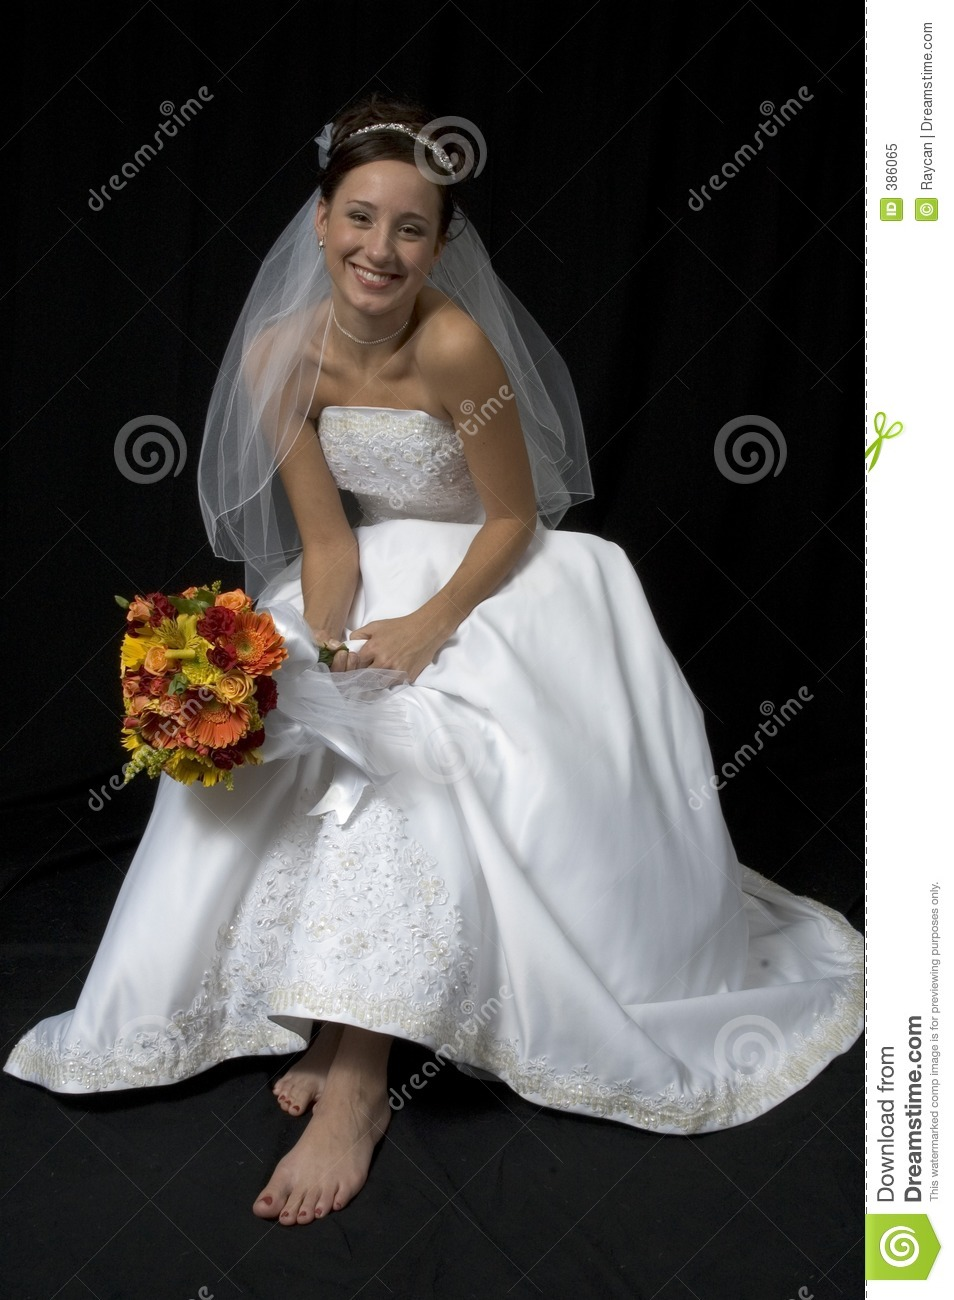 Bare Foot Bride Royalty Free Stock Photo Image 386065